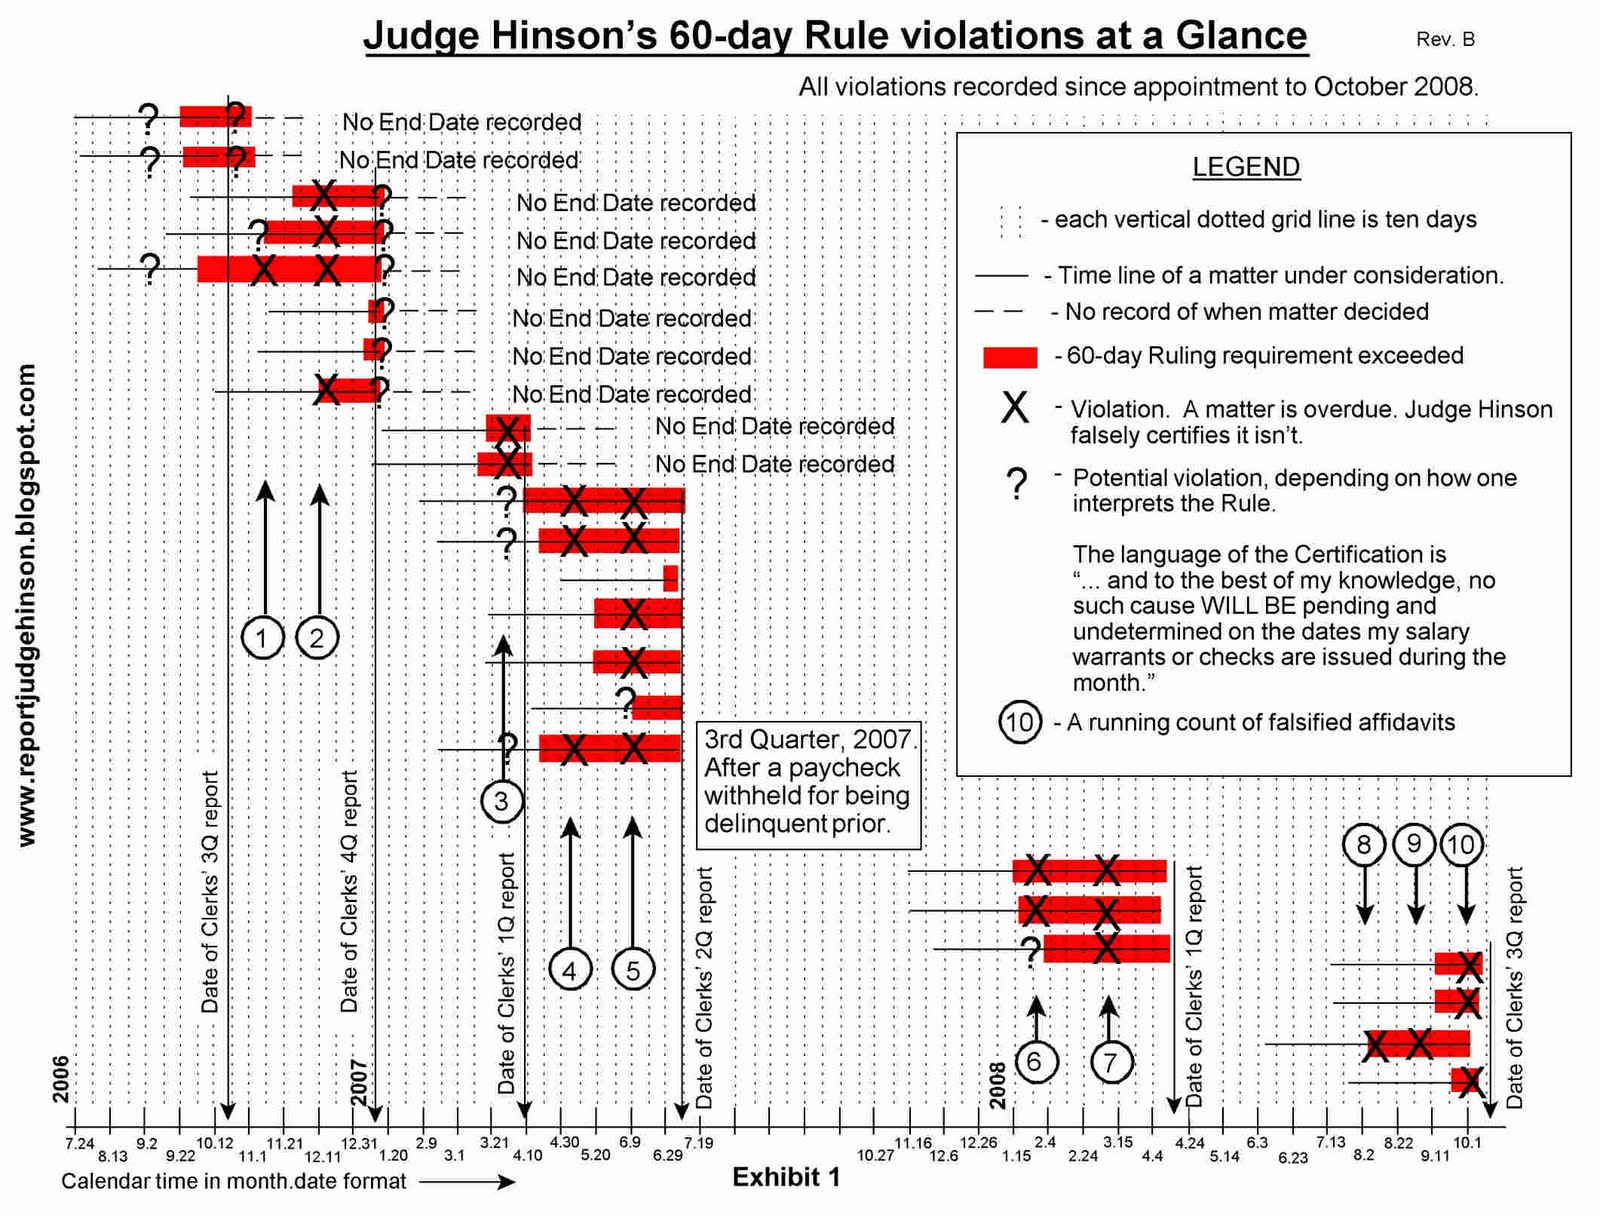 Exhibit 1. Judge Hinson's 60 day rule violatoins at a glance